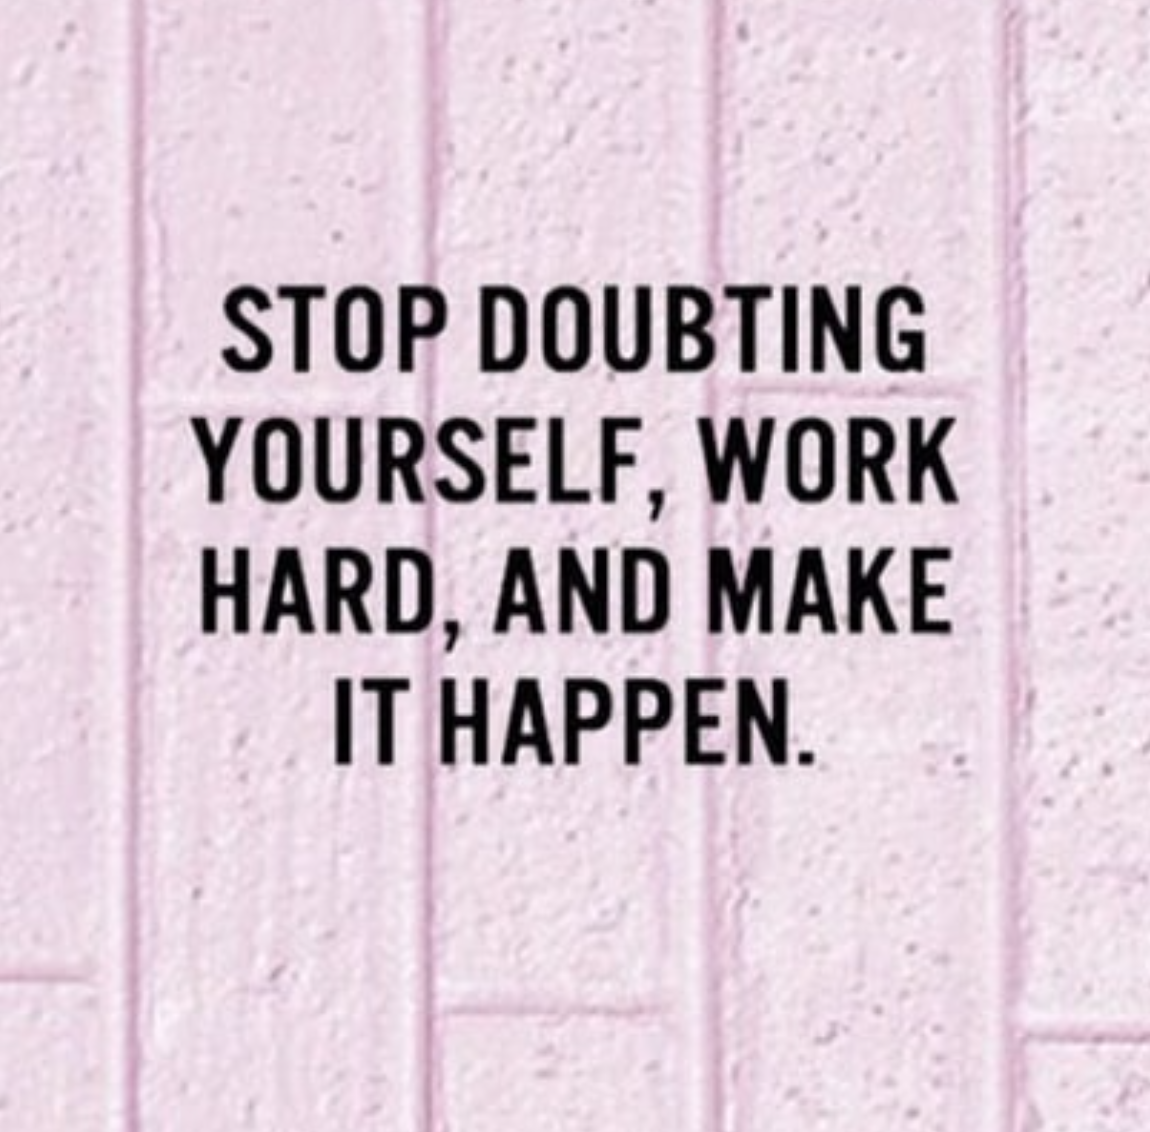 [Image] Stop doubting yourself, work hard, and make it happen.